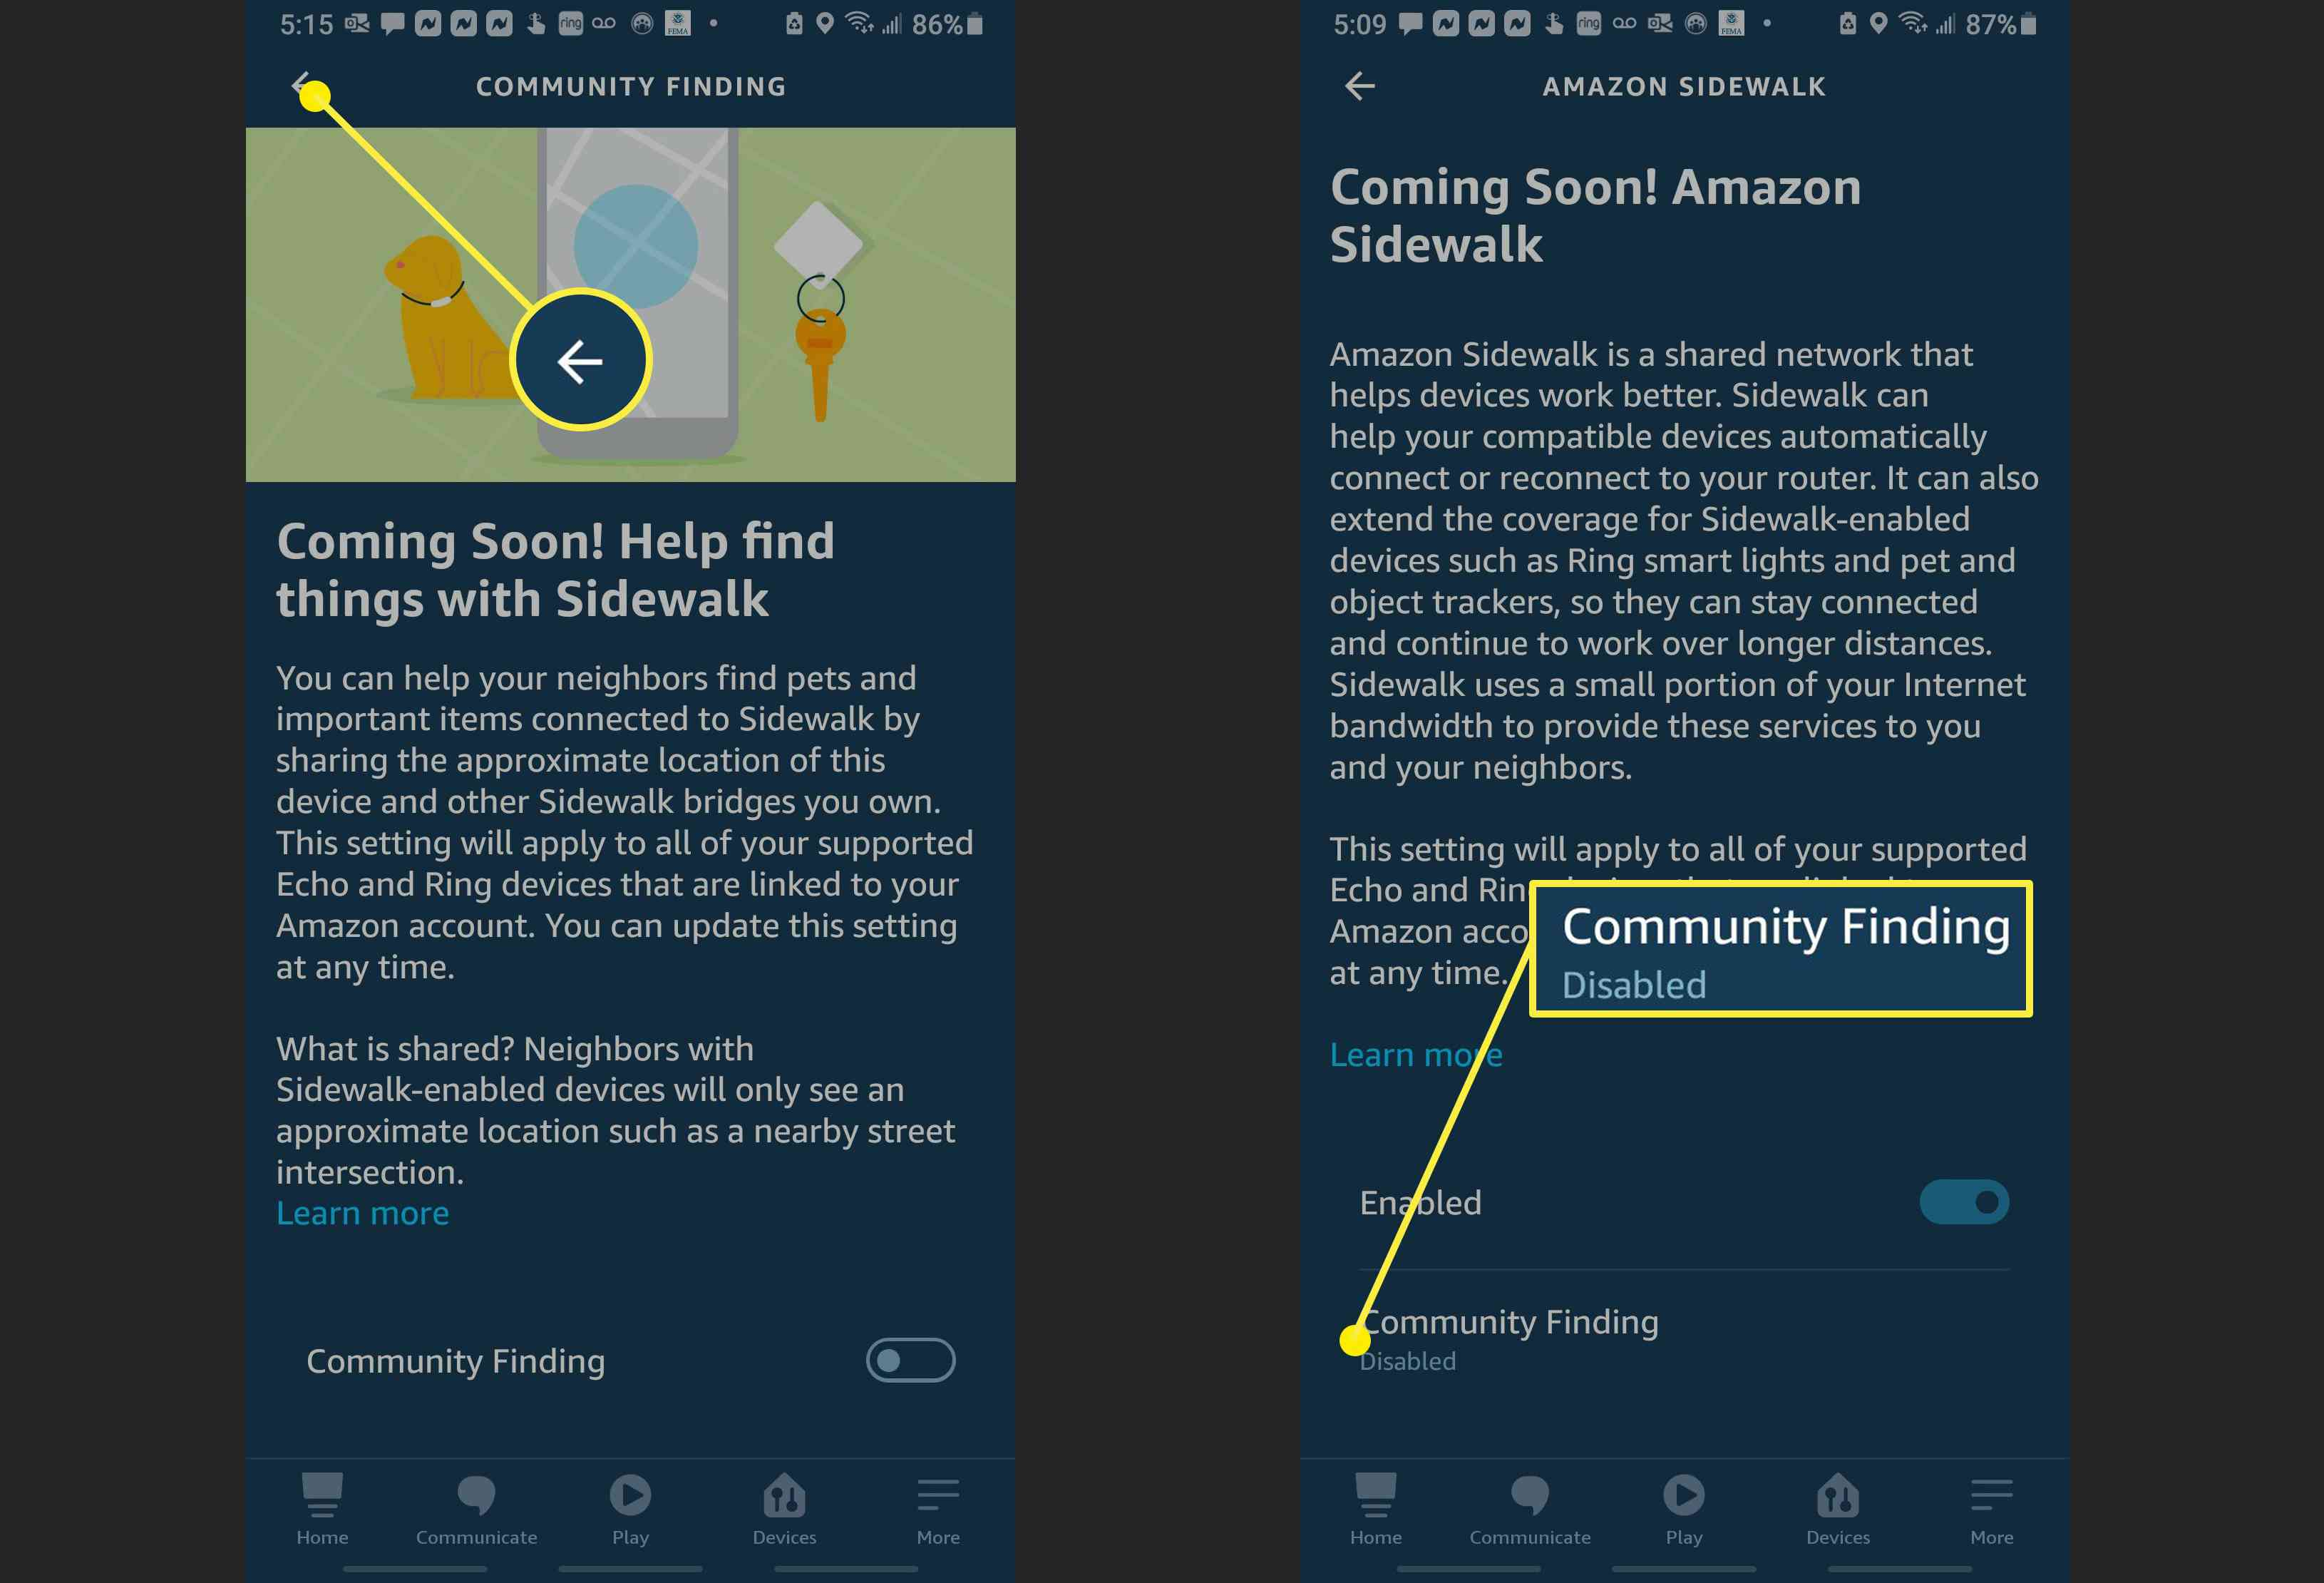 Screenshots showing how to confirm Community Finding is disabled in the Alexa App.